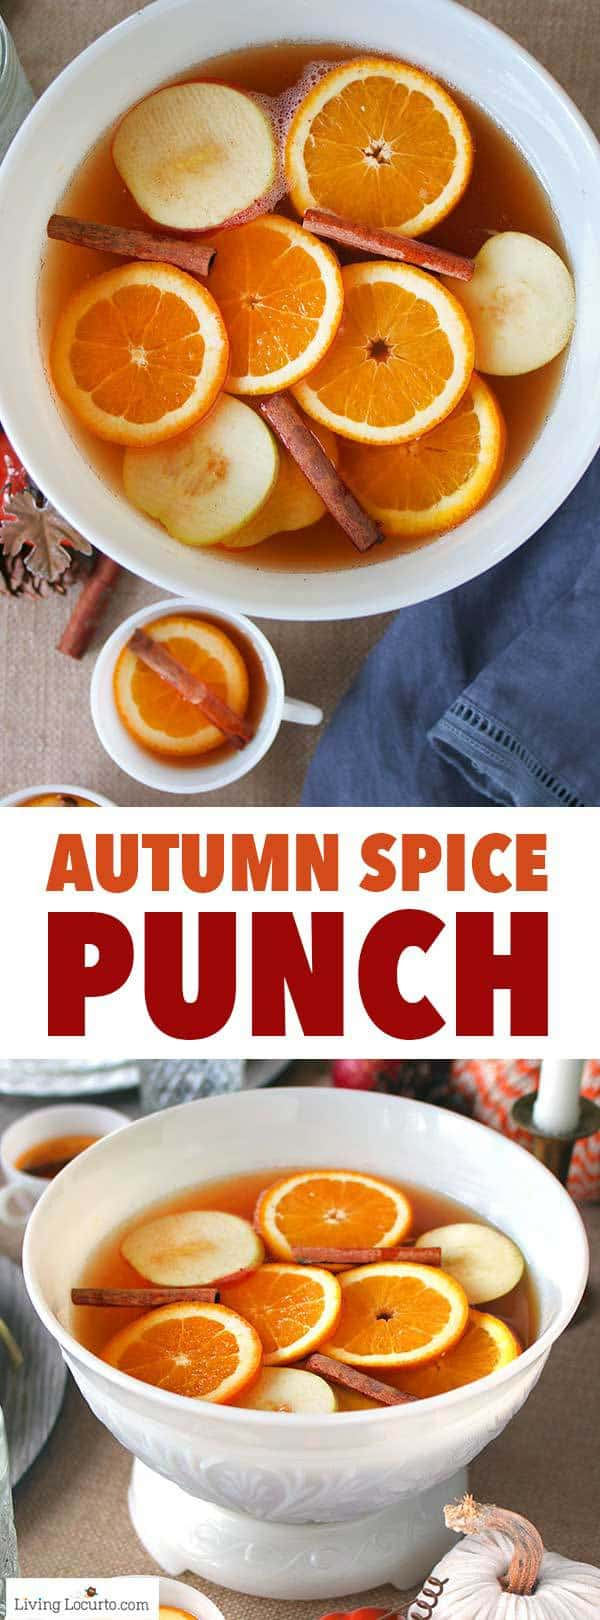 An easy Autumn Spice Punch Recipe made with sweet tea, apple juice and fall spices. A perfect drink to serve for Thanksgiving, a Christmas party or baby shower. A simple Holiday punch recipe the whole family will love! #punch #drinks